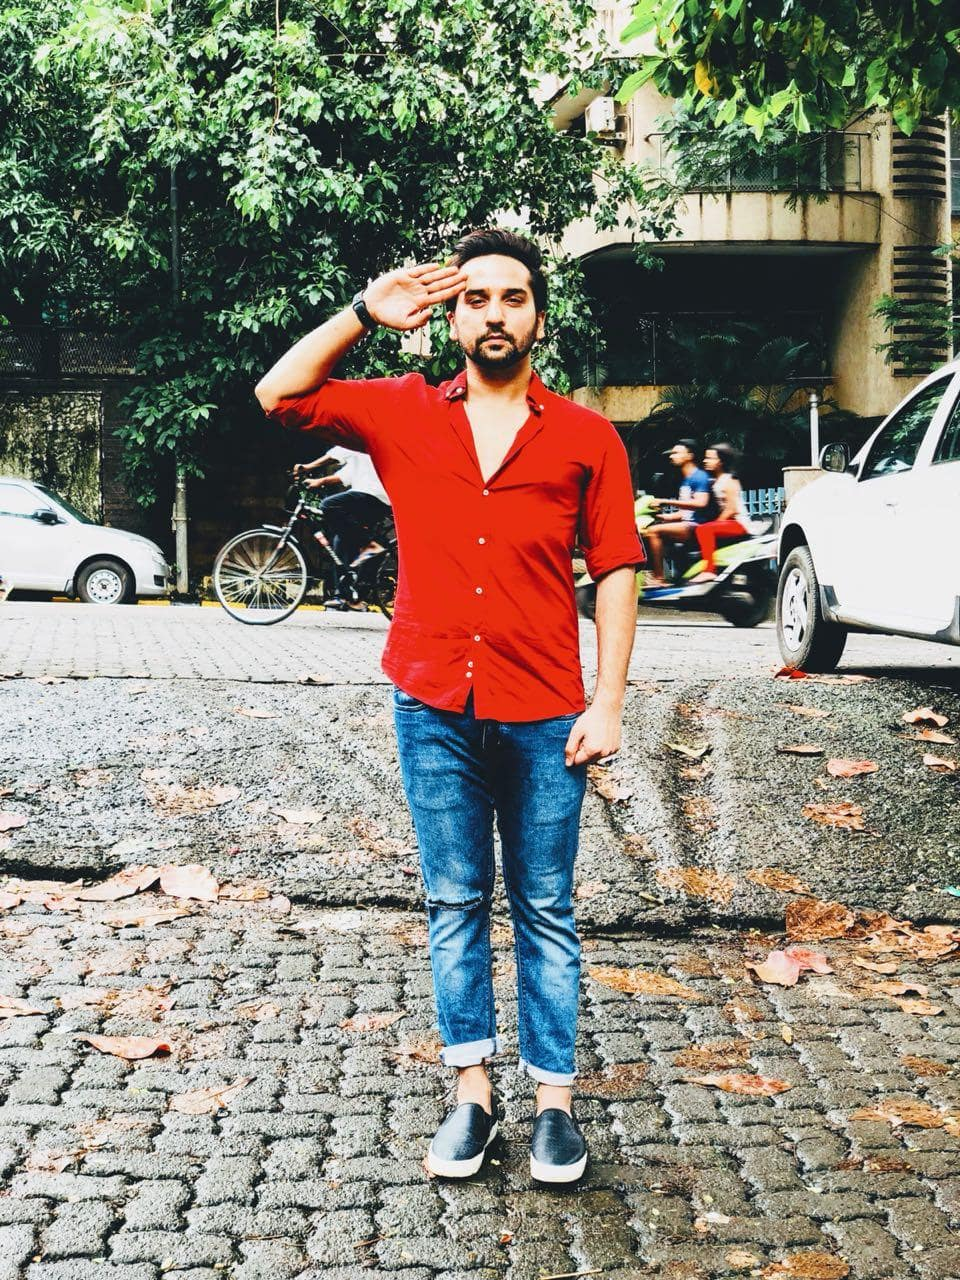 Shashank Vyas, Arjun Bijlani, Adaa Khan and other telly actors on Independence Day and the meaning of freedom